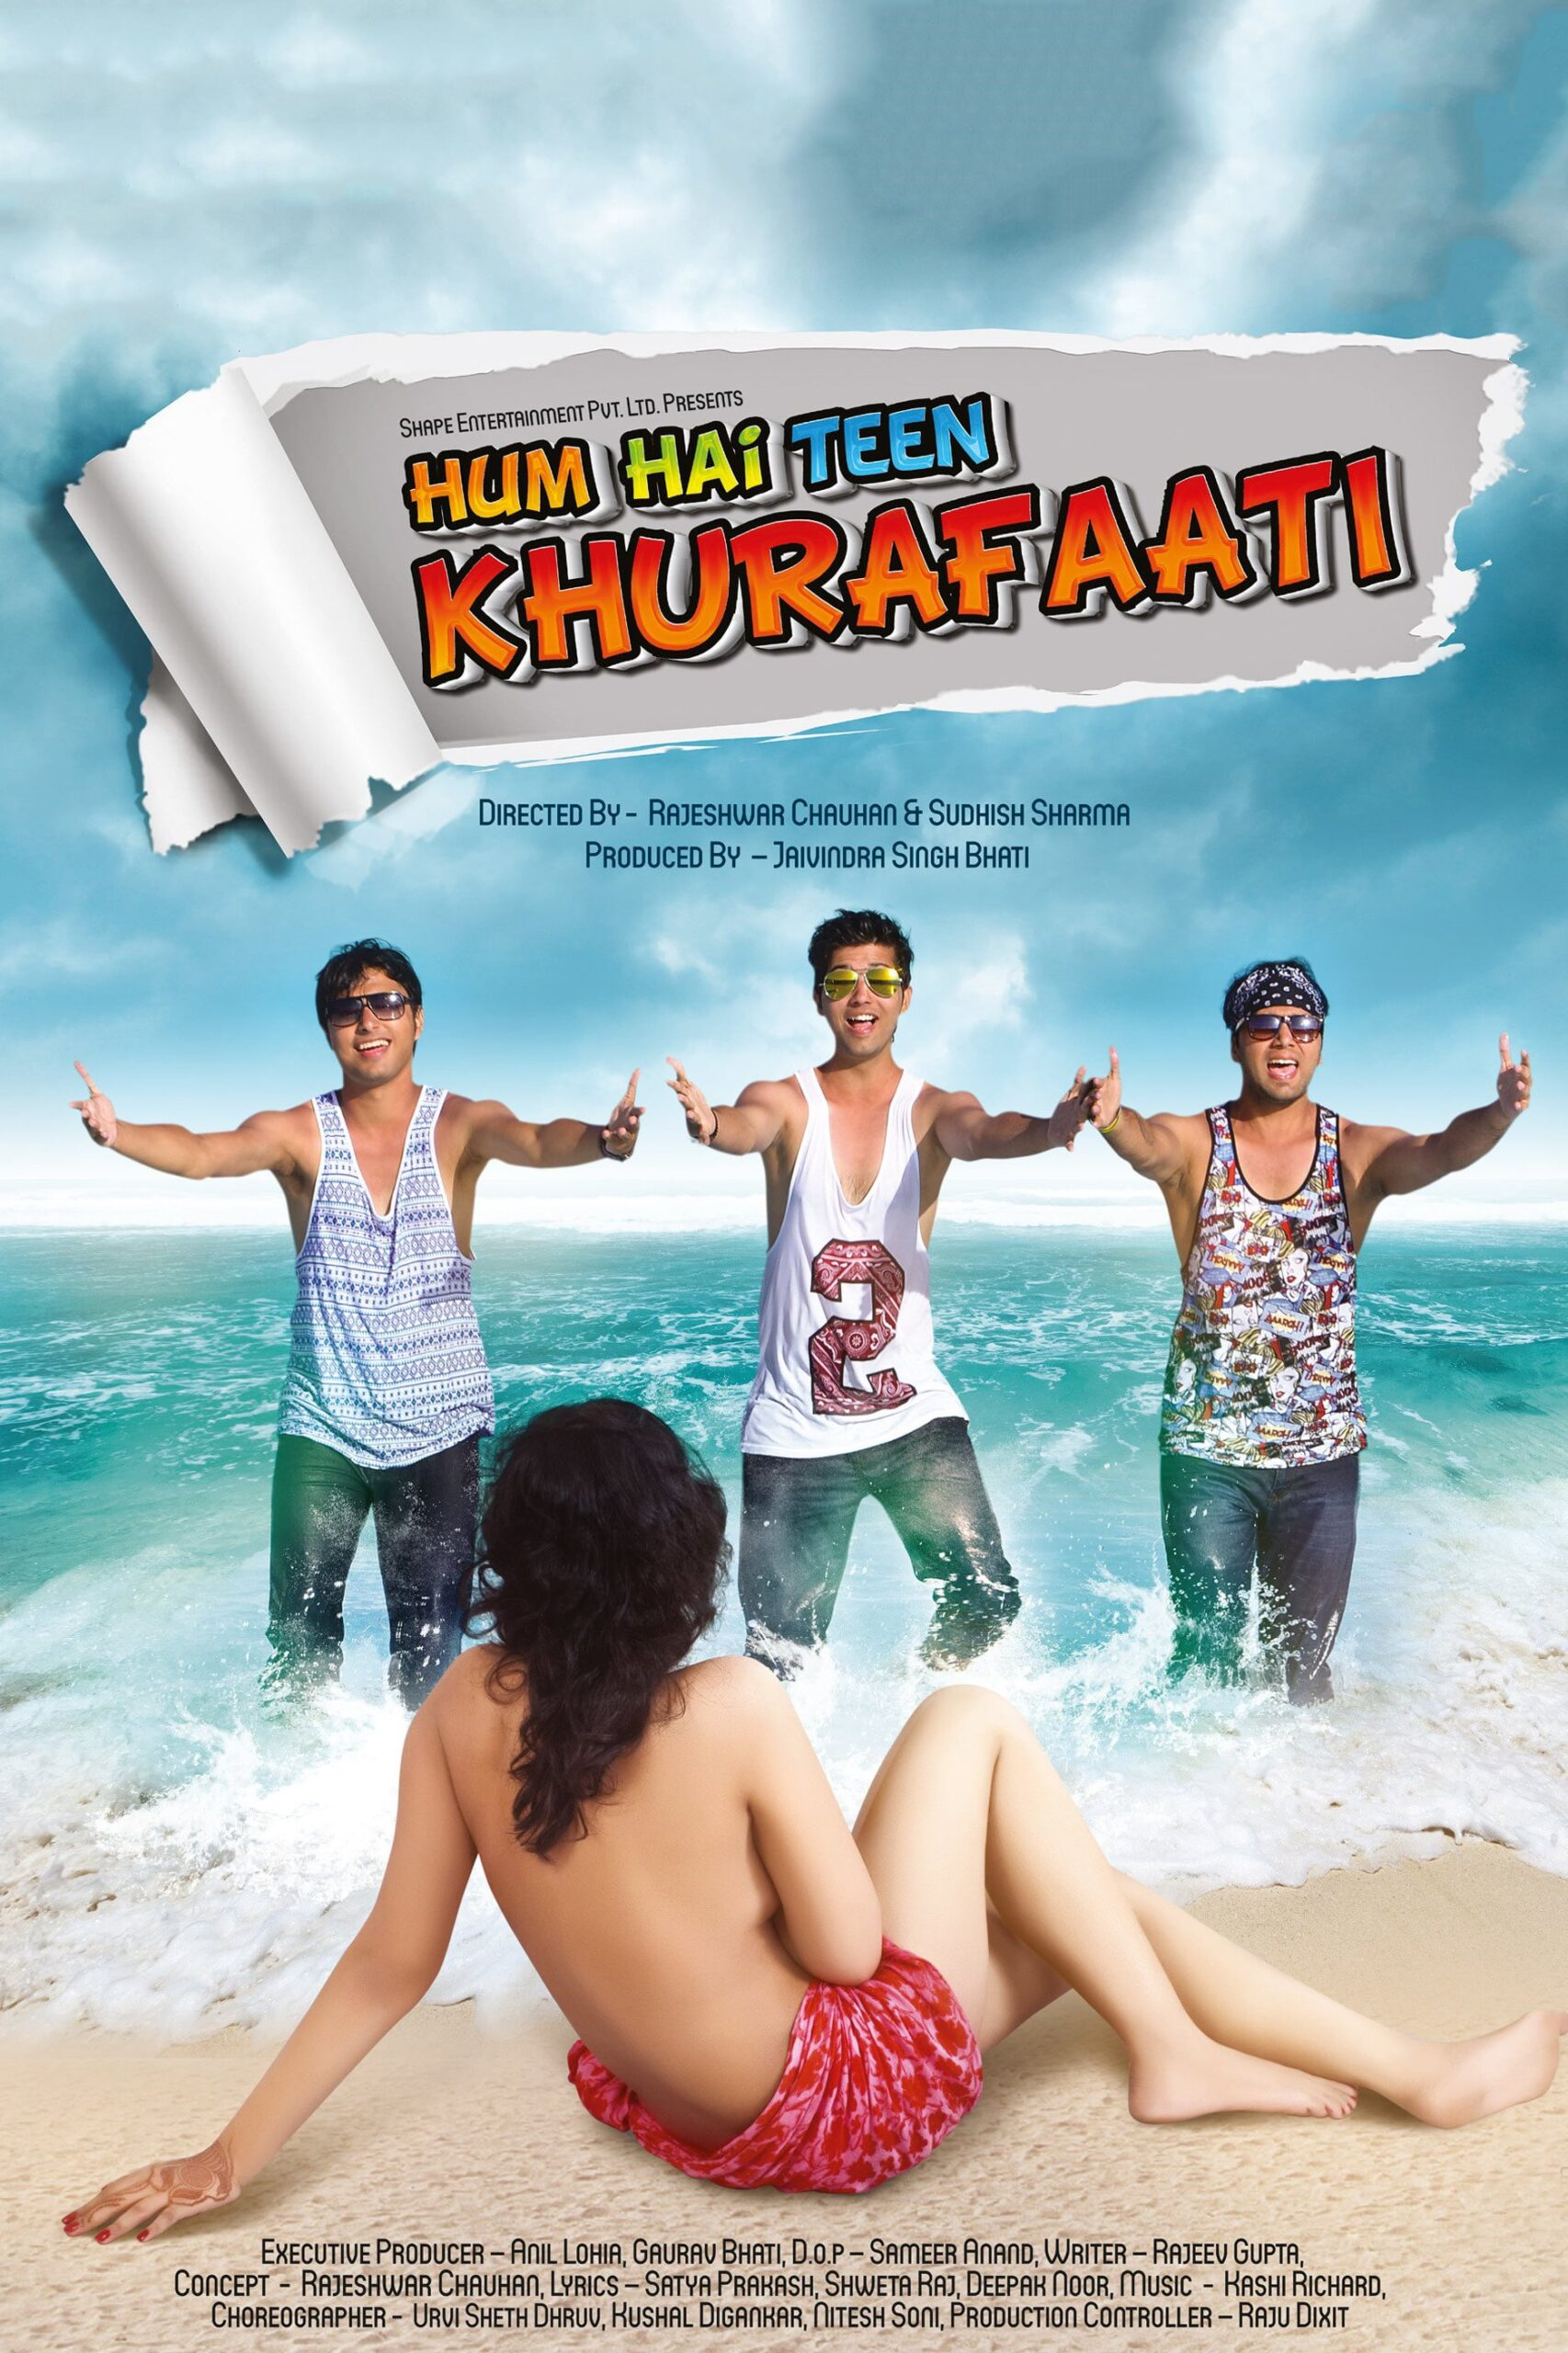 Teen Beach Movie Streaming : beach, movie, streaming, Khurafaati, Hindi, Movie, Streaming, Online, Watch